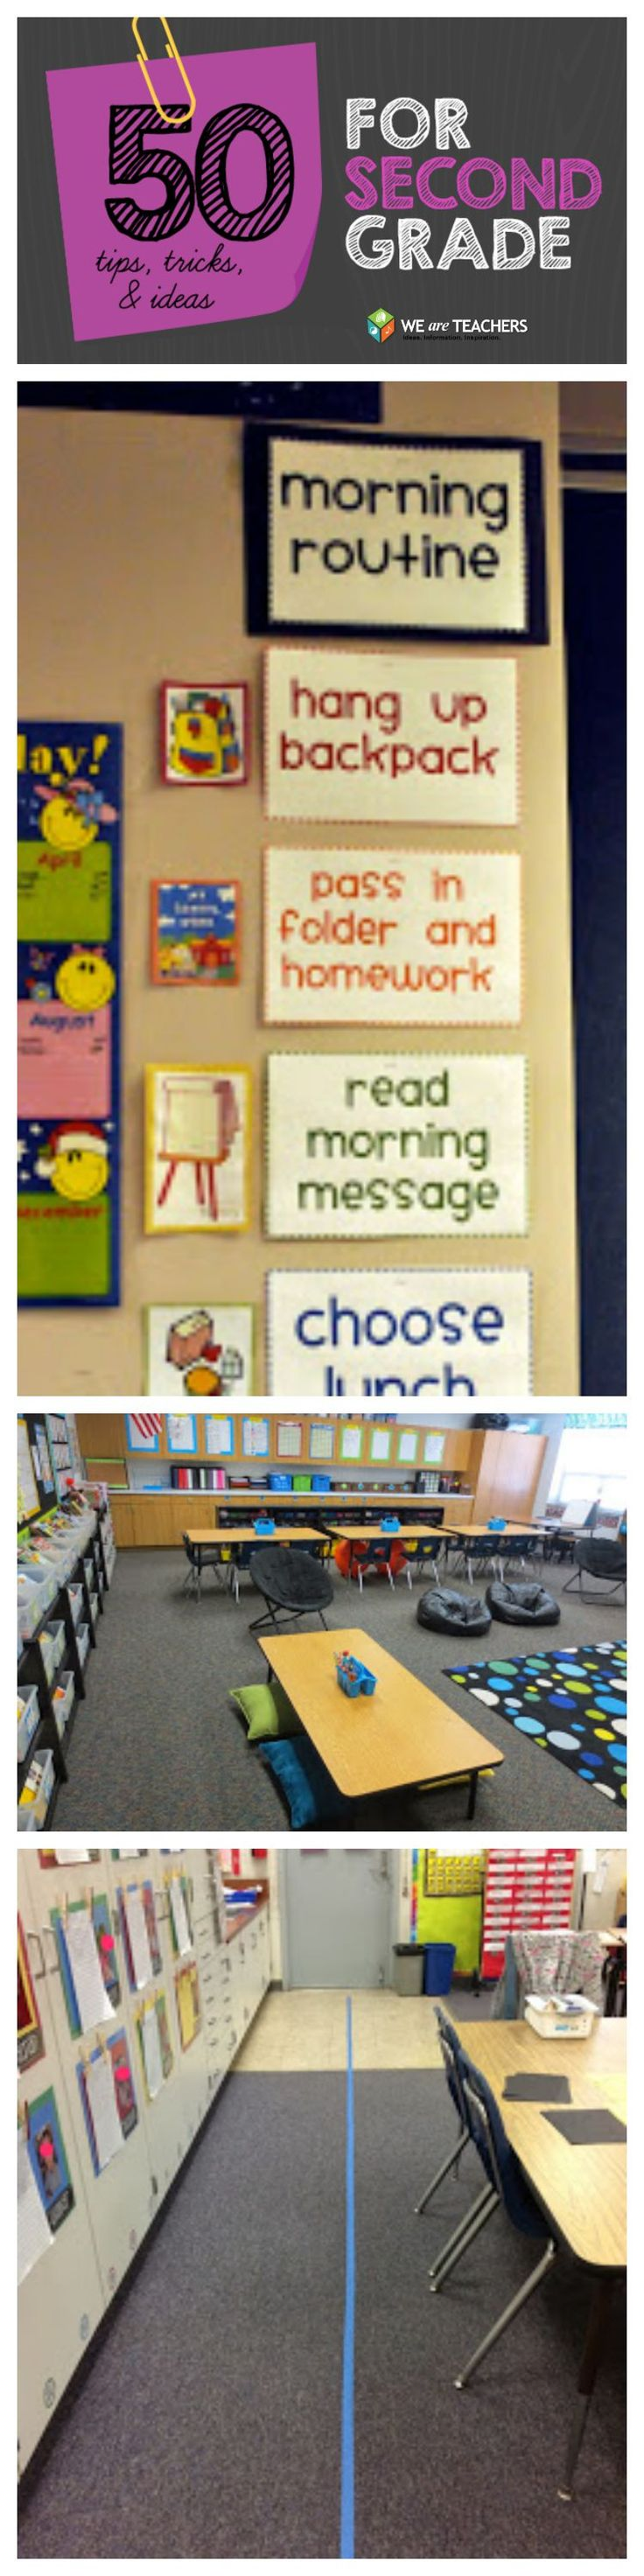 Classroom Equipment Ideas ~ Best math for second grade images on pinterest